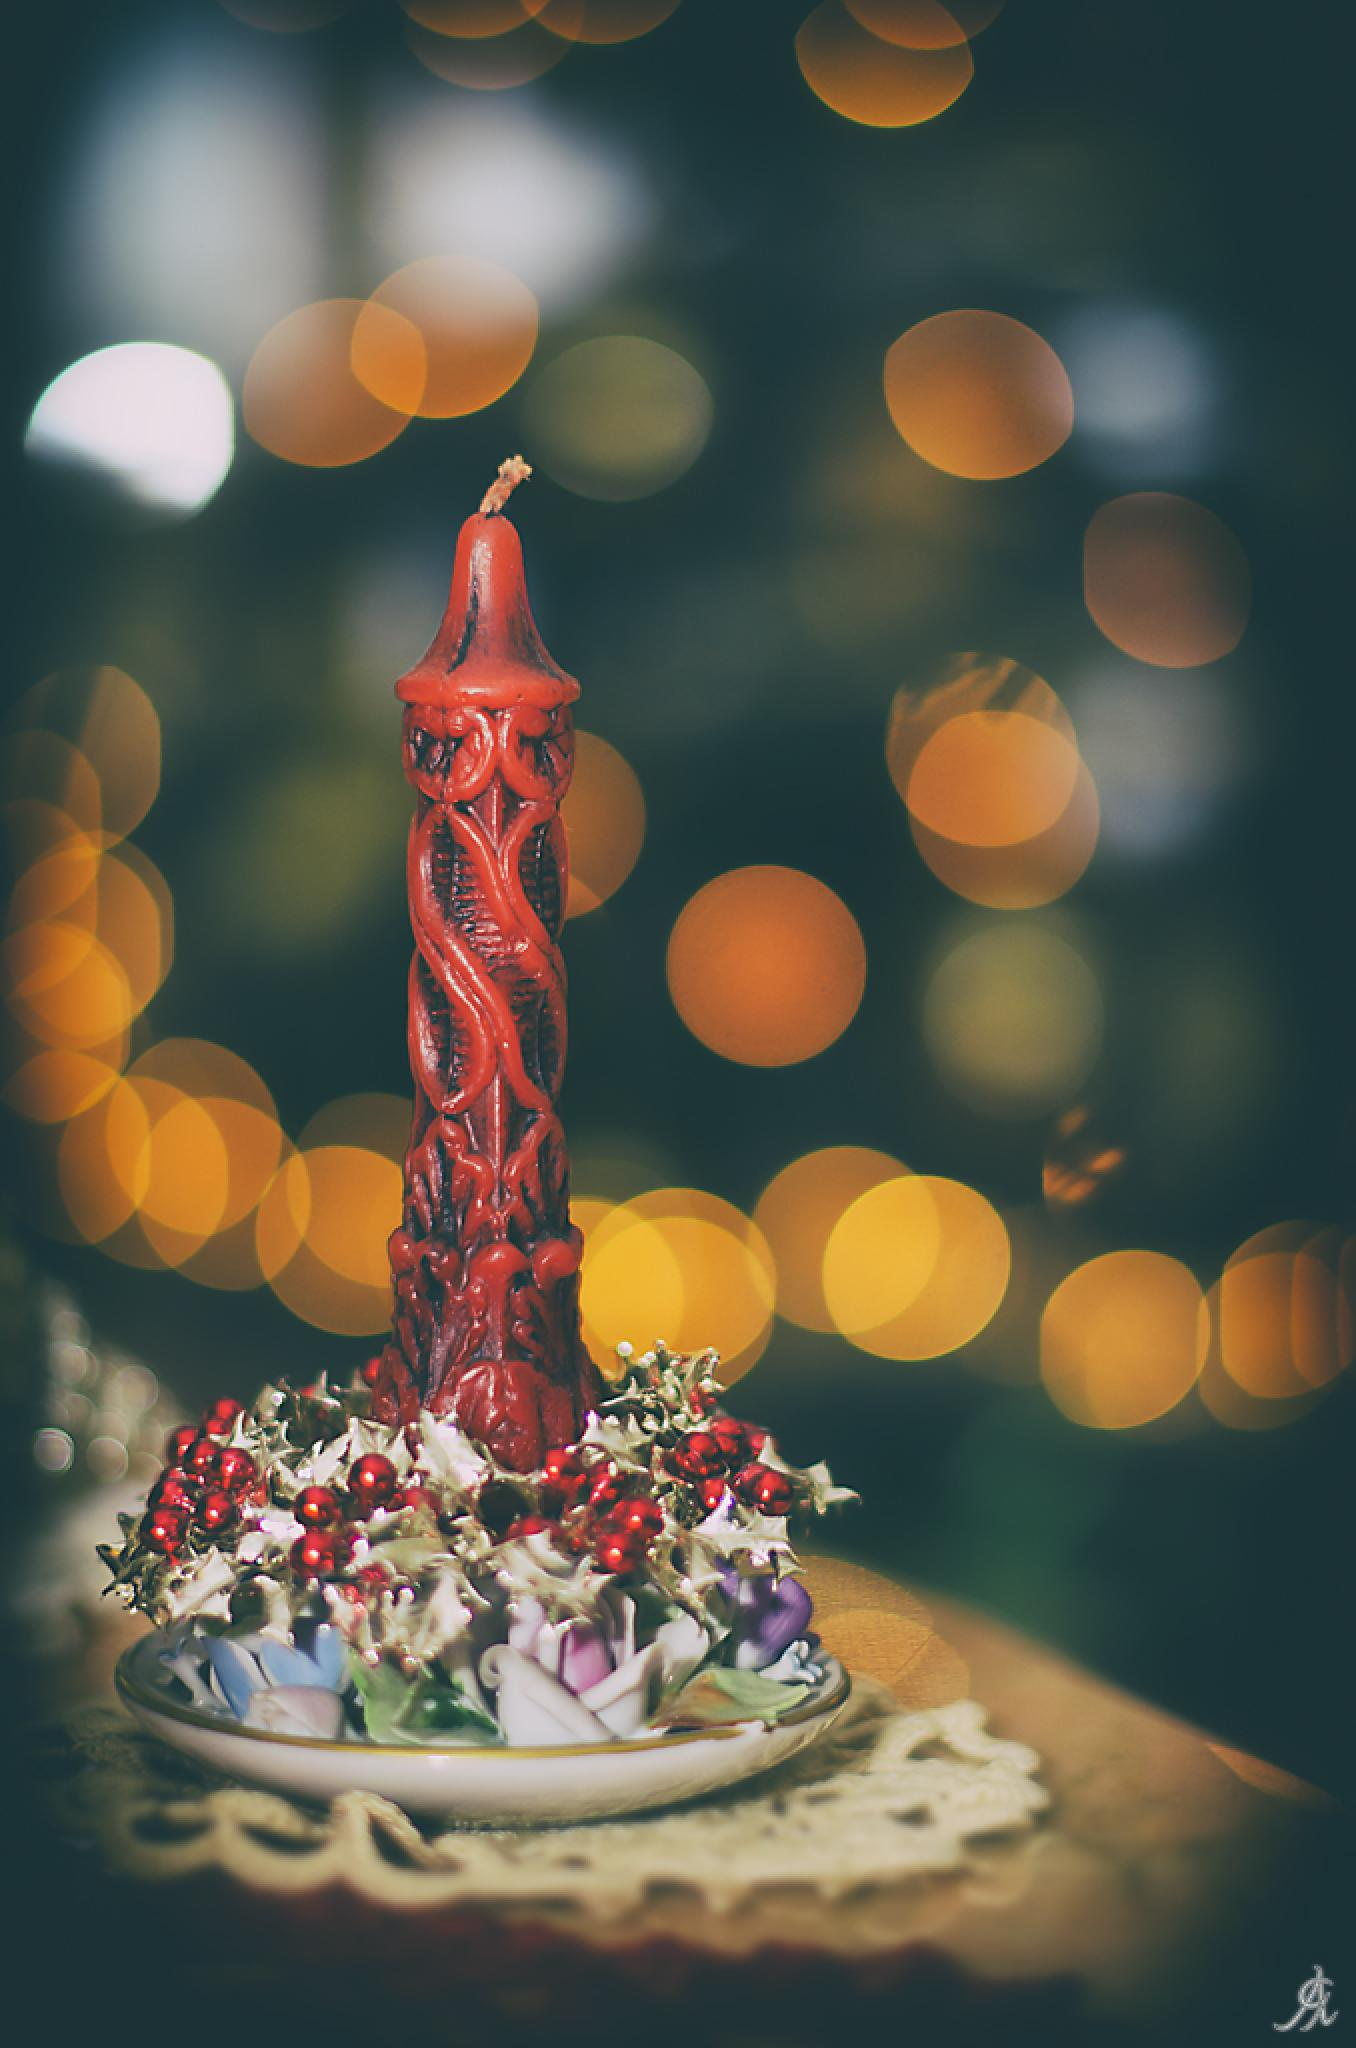 To light the Christmas by Alessandro Giorgi Art Photography